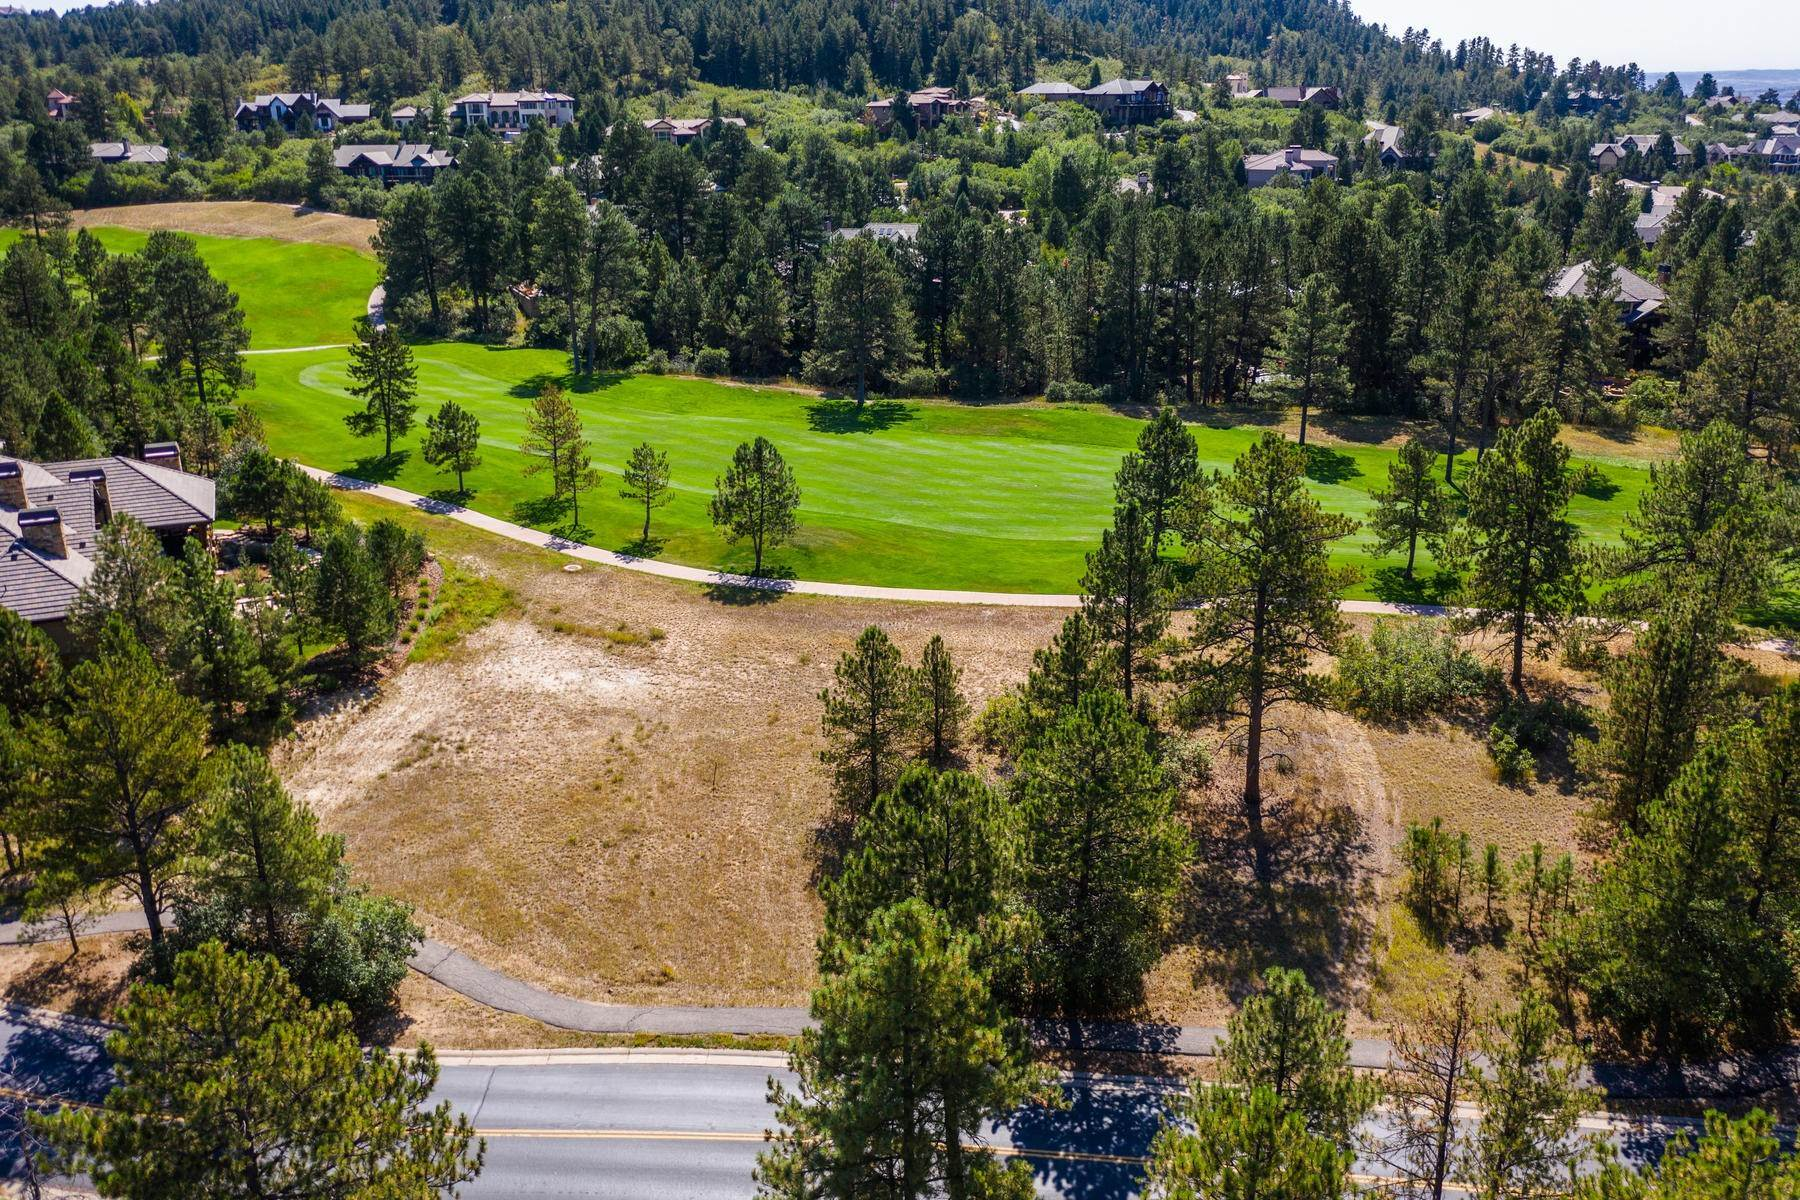 Property for Active at 956 Country Club Parkway, Castle Rock, Co, 80108 956 Country Club Parkway Castle Rock, Colorado 80108 United States